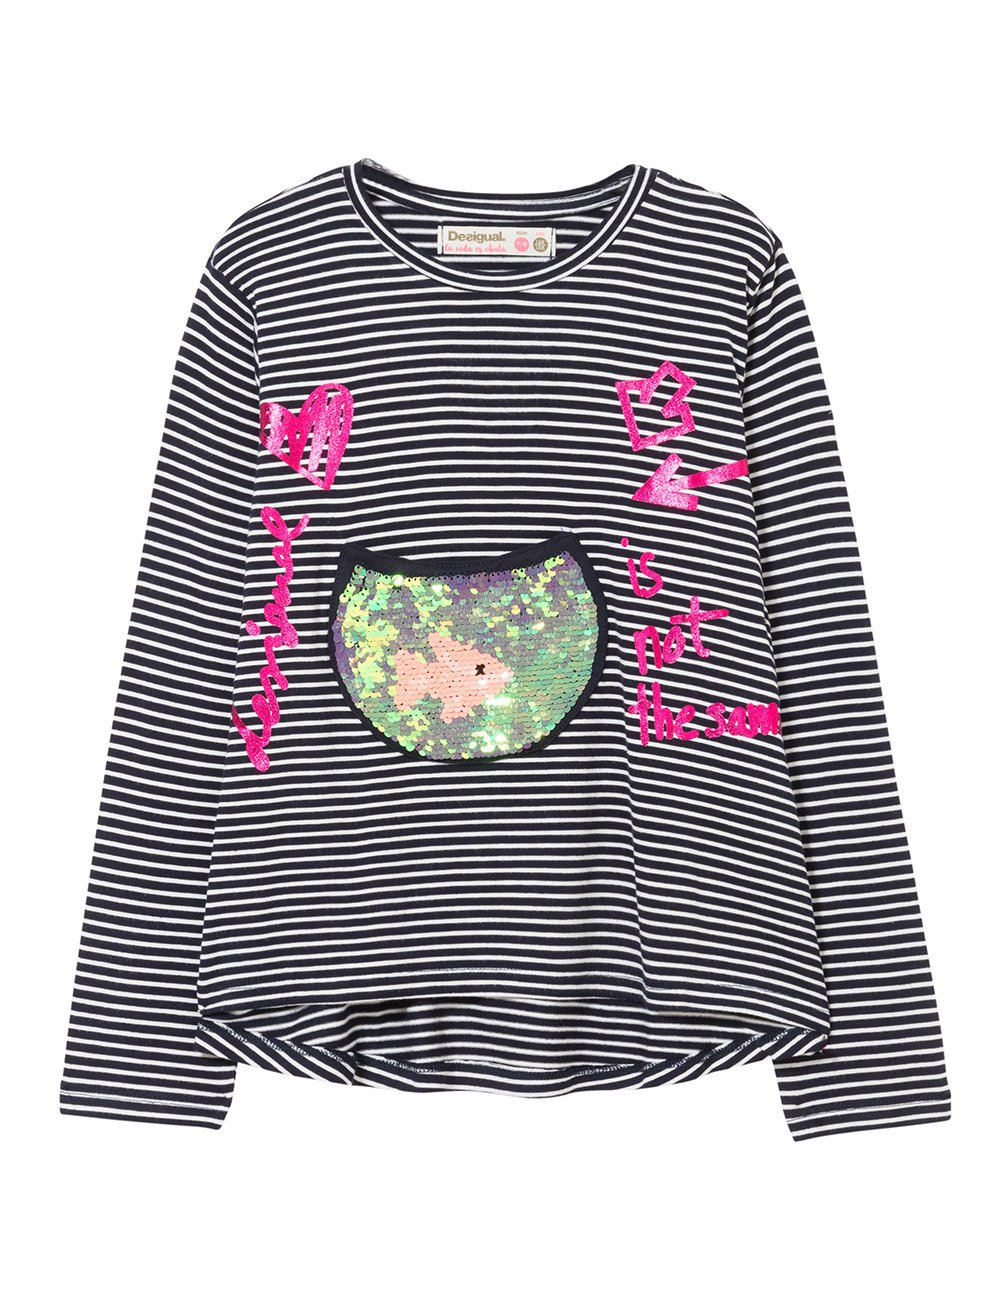 Desigual TS_Washington Camiseta para Niñas